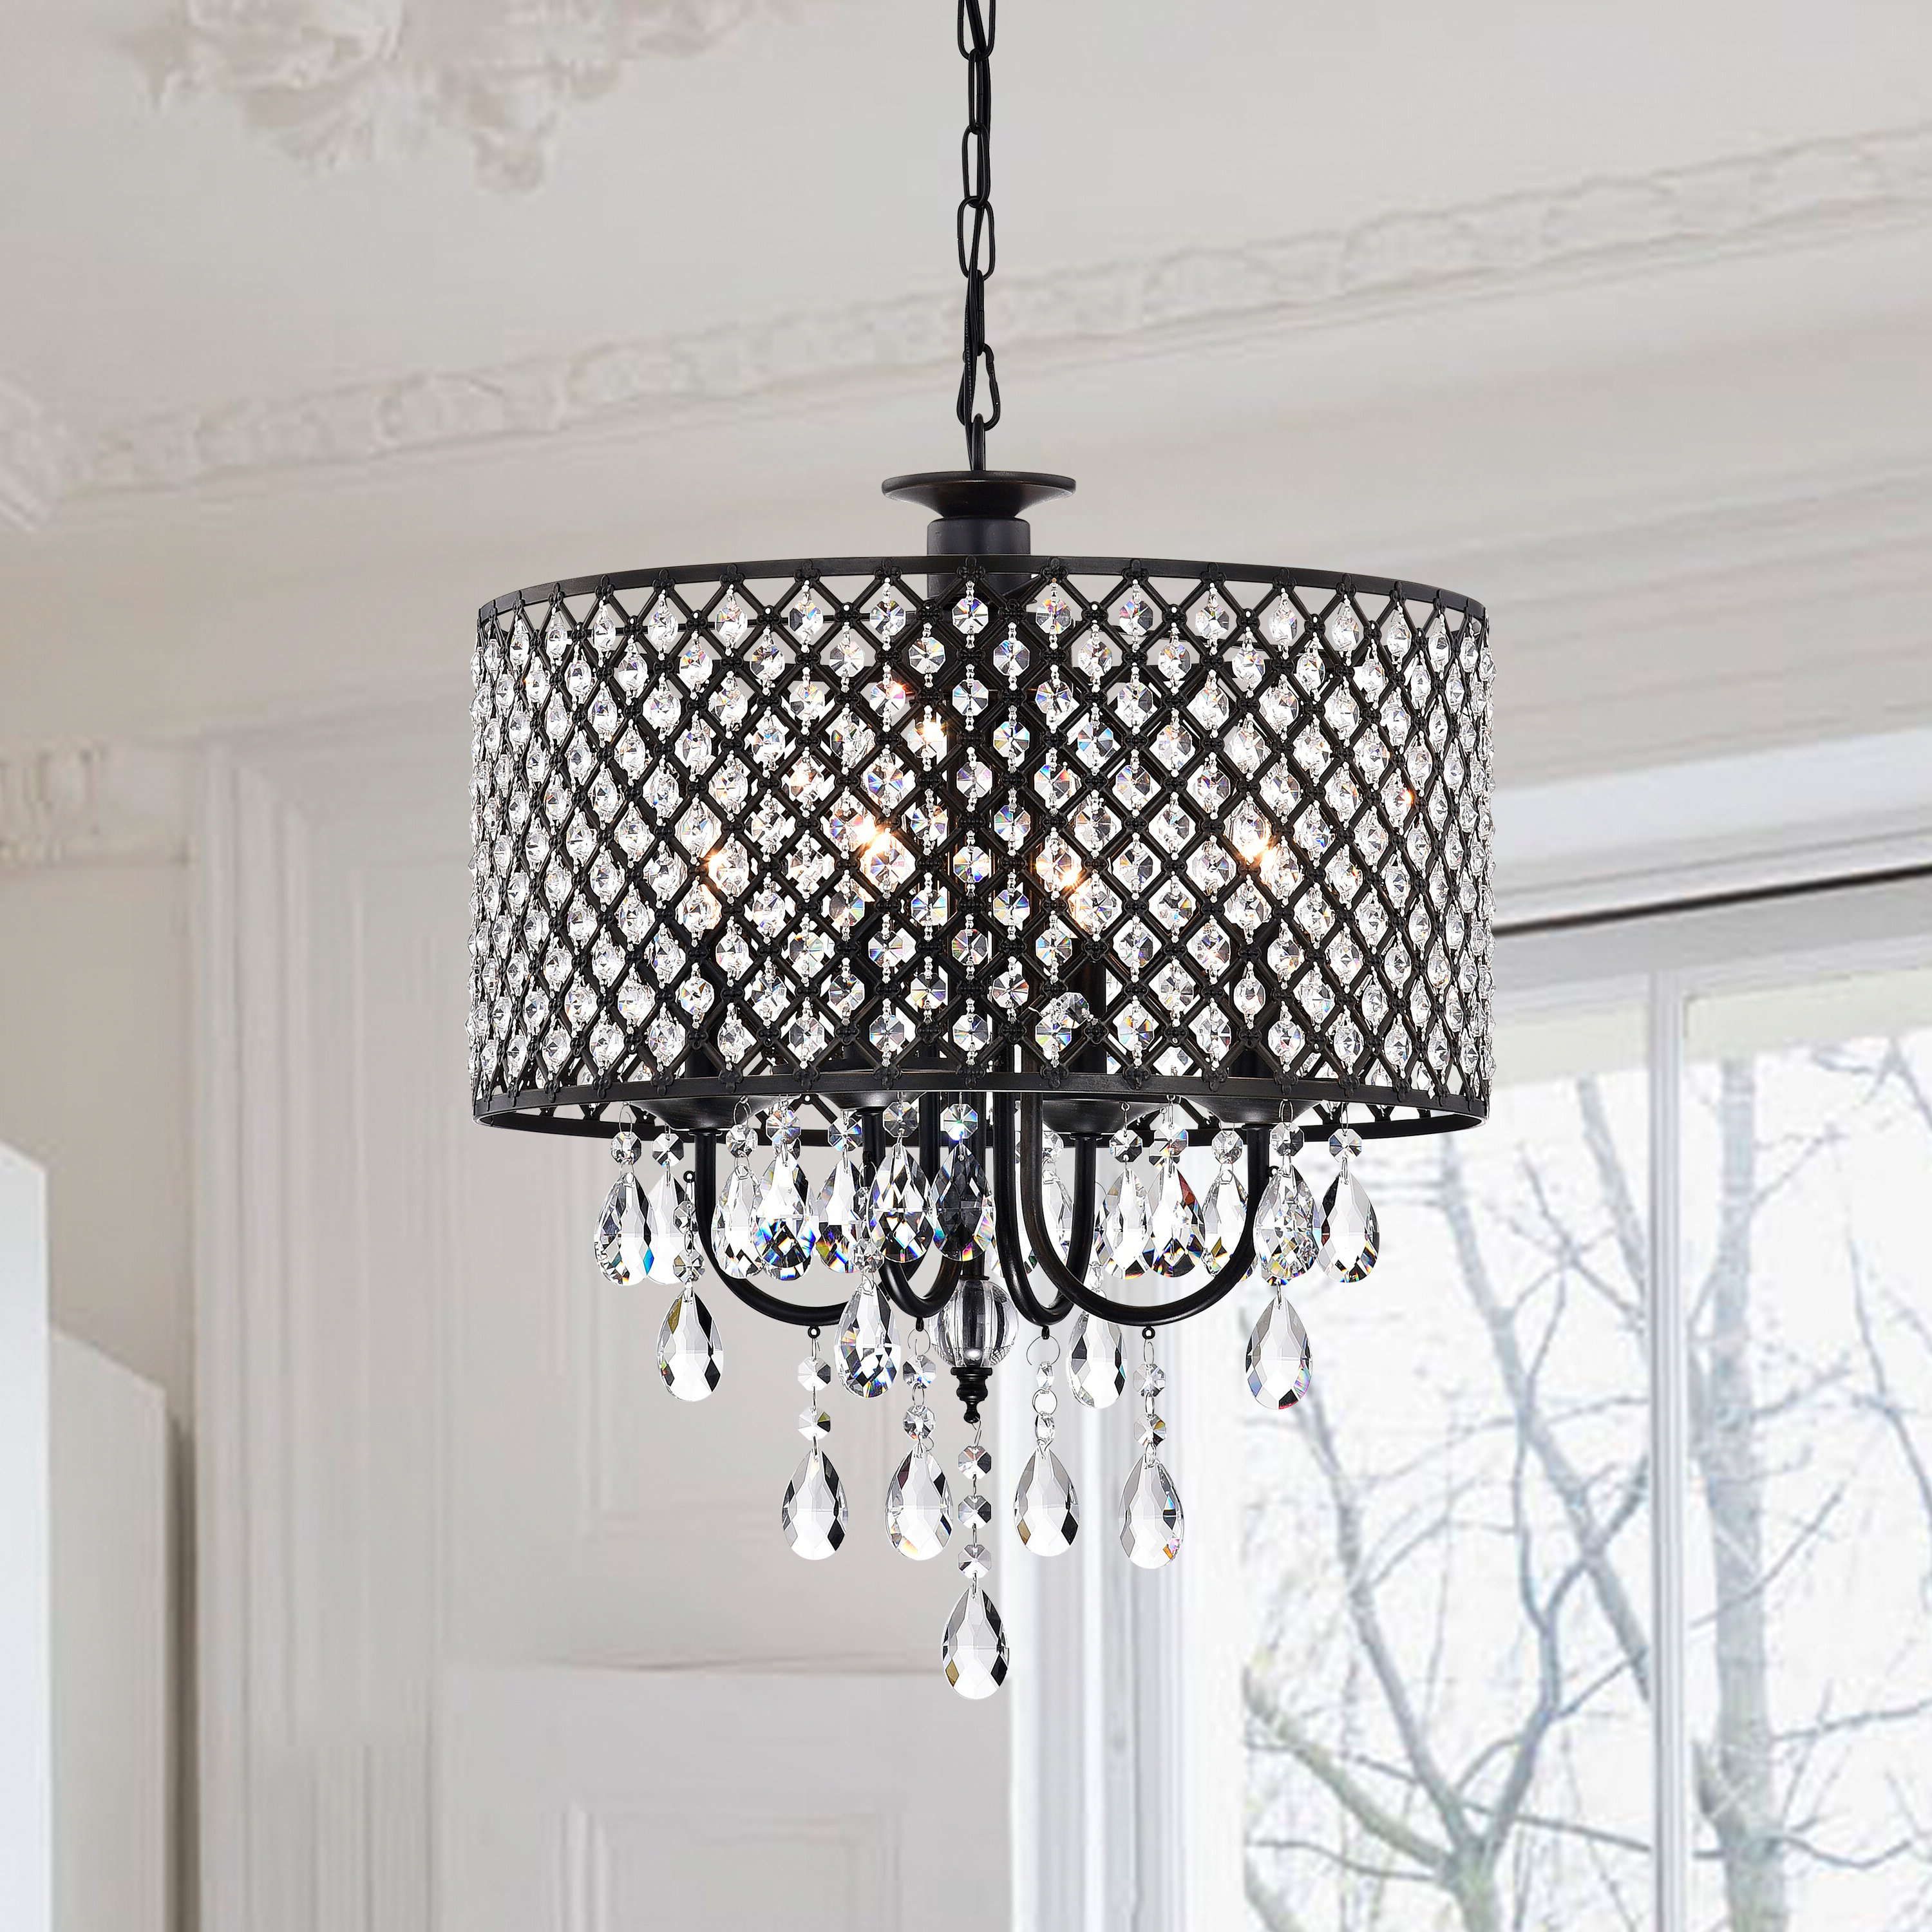 Well Liked Gisselle 4 Light Drum Chandelier Intended For Gisselle 4 Light Drum Chandeliers (View 2 of 25)